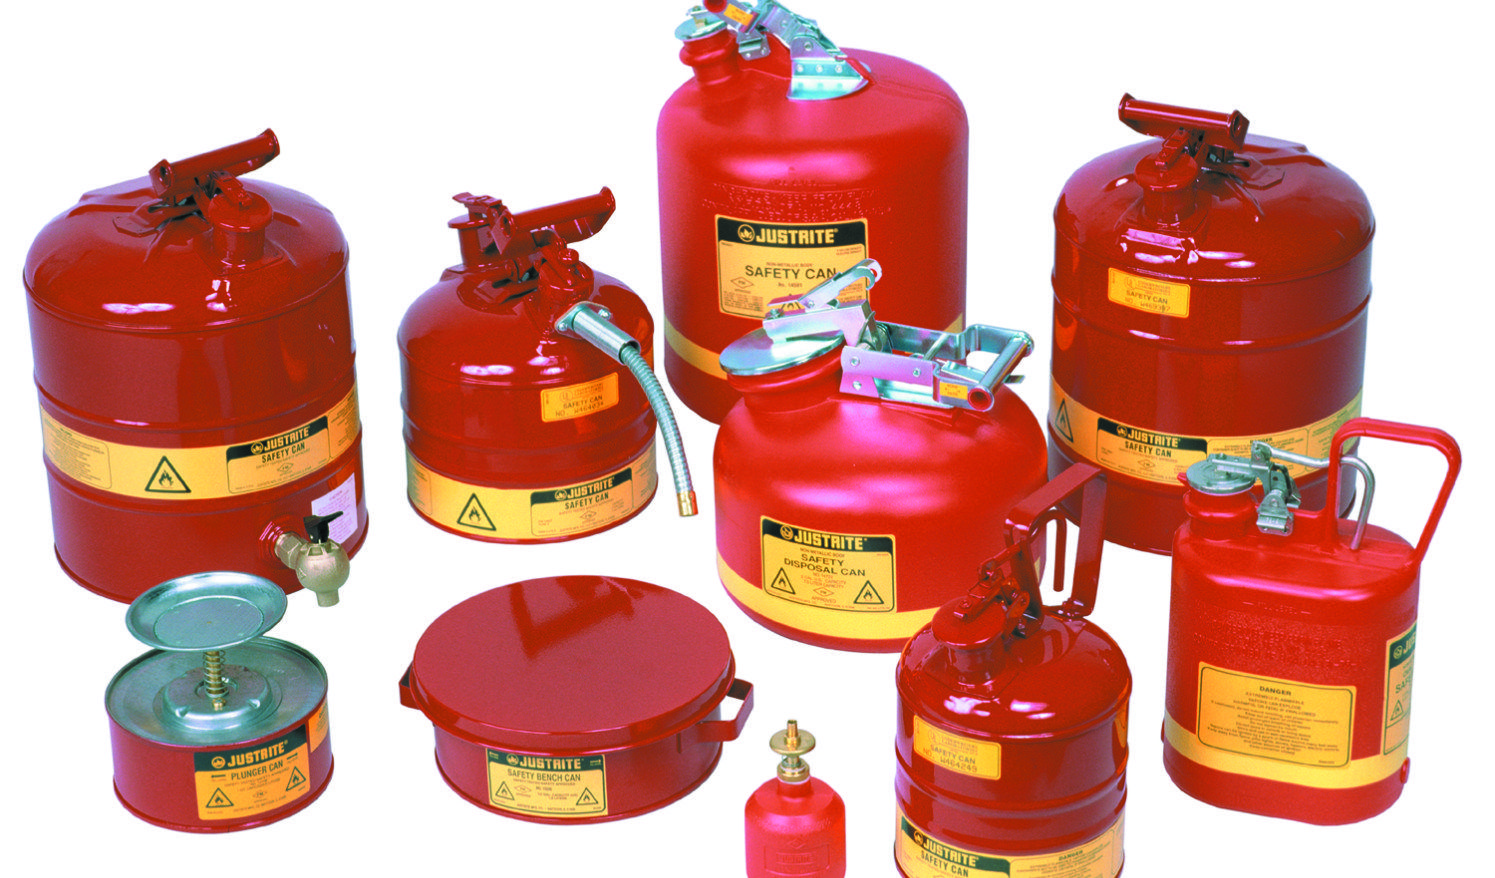 Best Safety Can Canning, Safety, Fire extinguisher